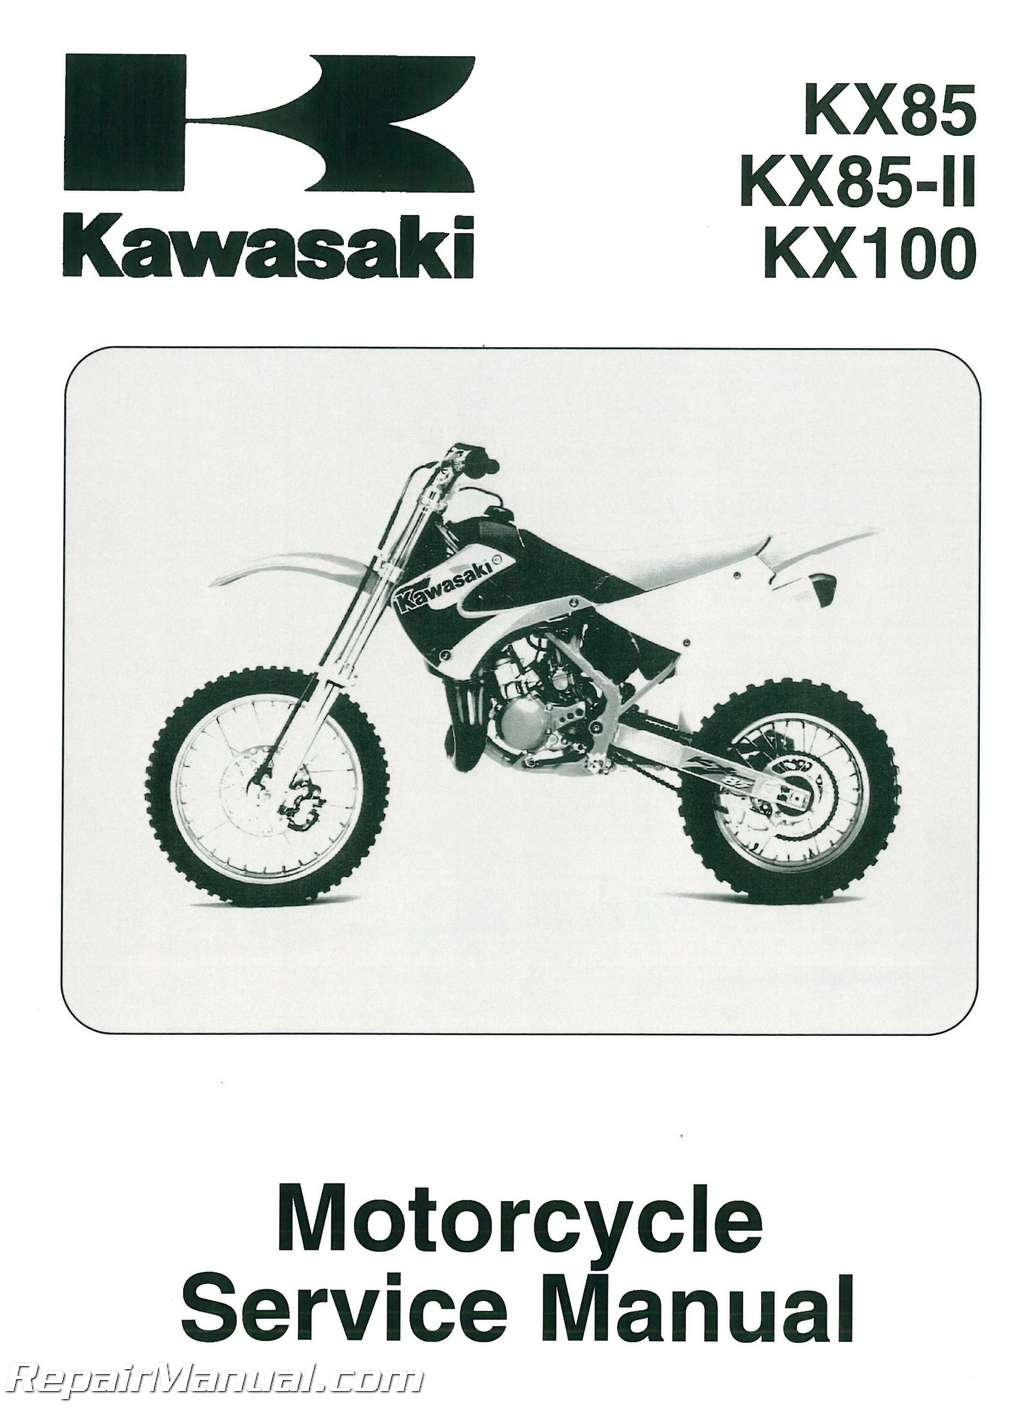 2001 2011 Kawasaki Kx85 Kx100 Motorcycle Service Manual border=